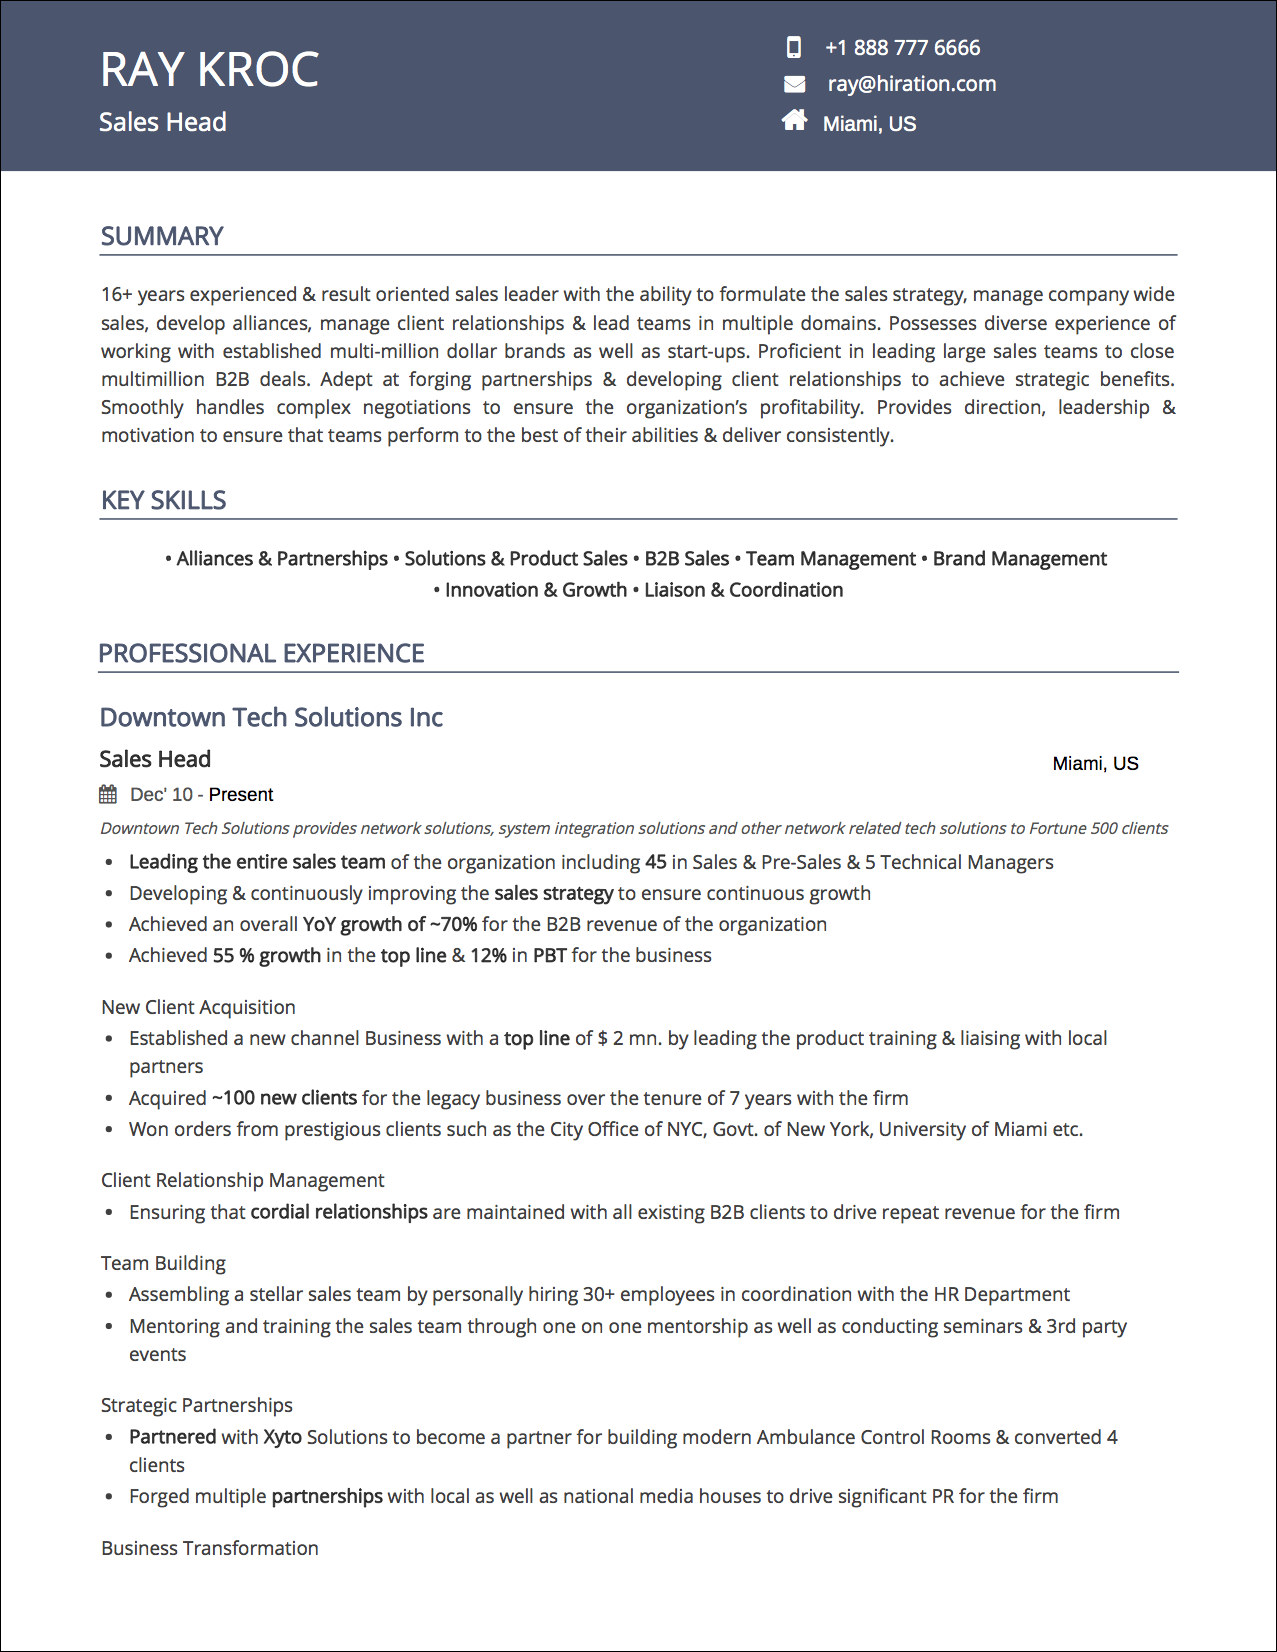 Resume Templates The 2019 Guide To Choosing The Best